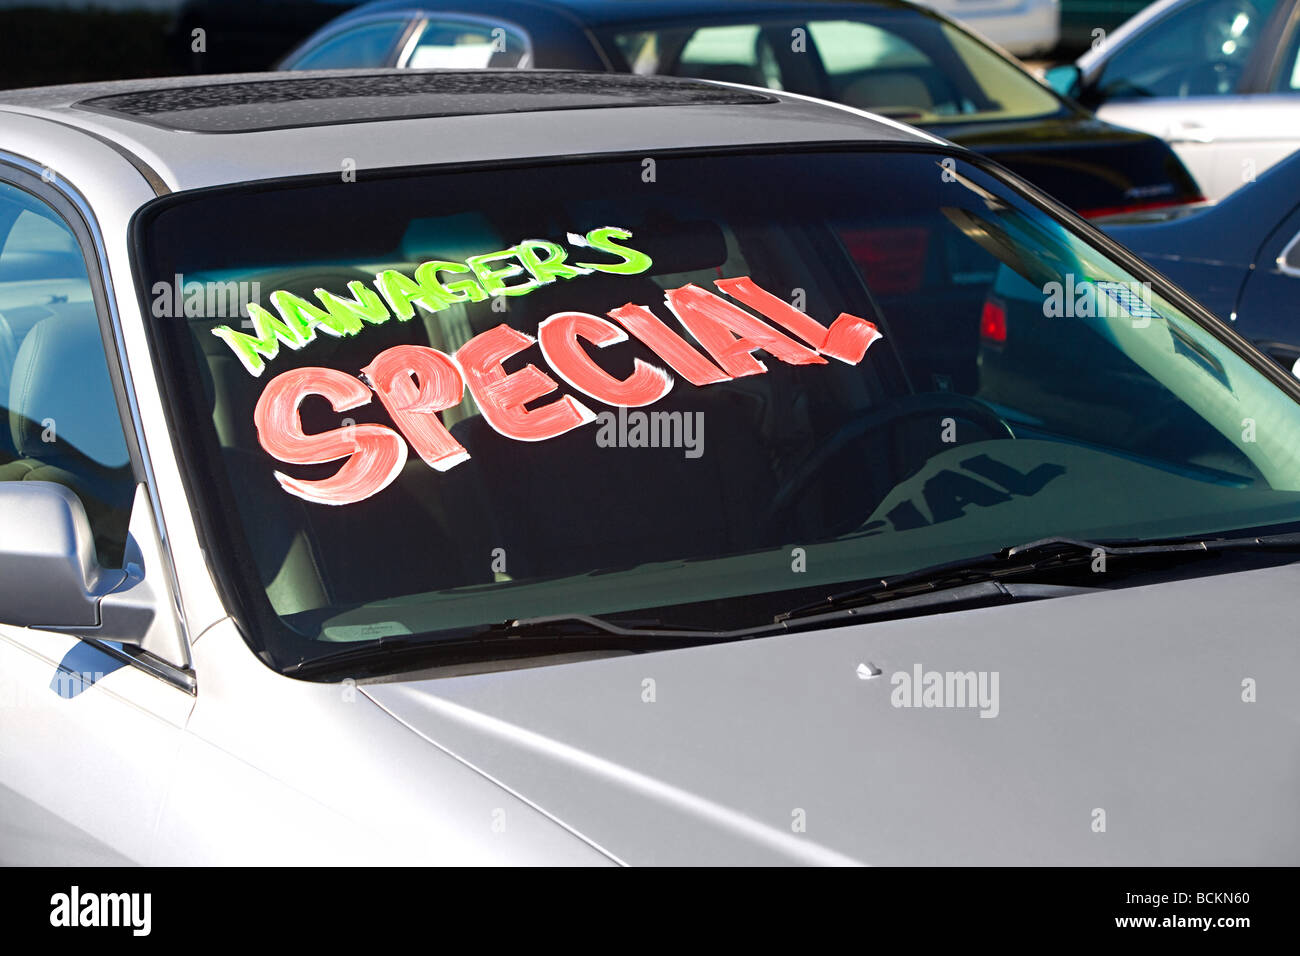 Sign in car window - Stock Image